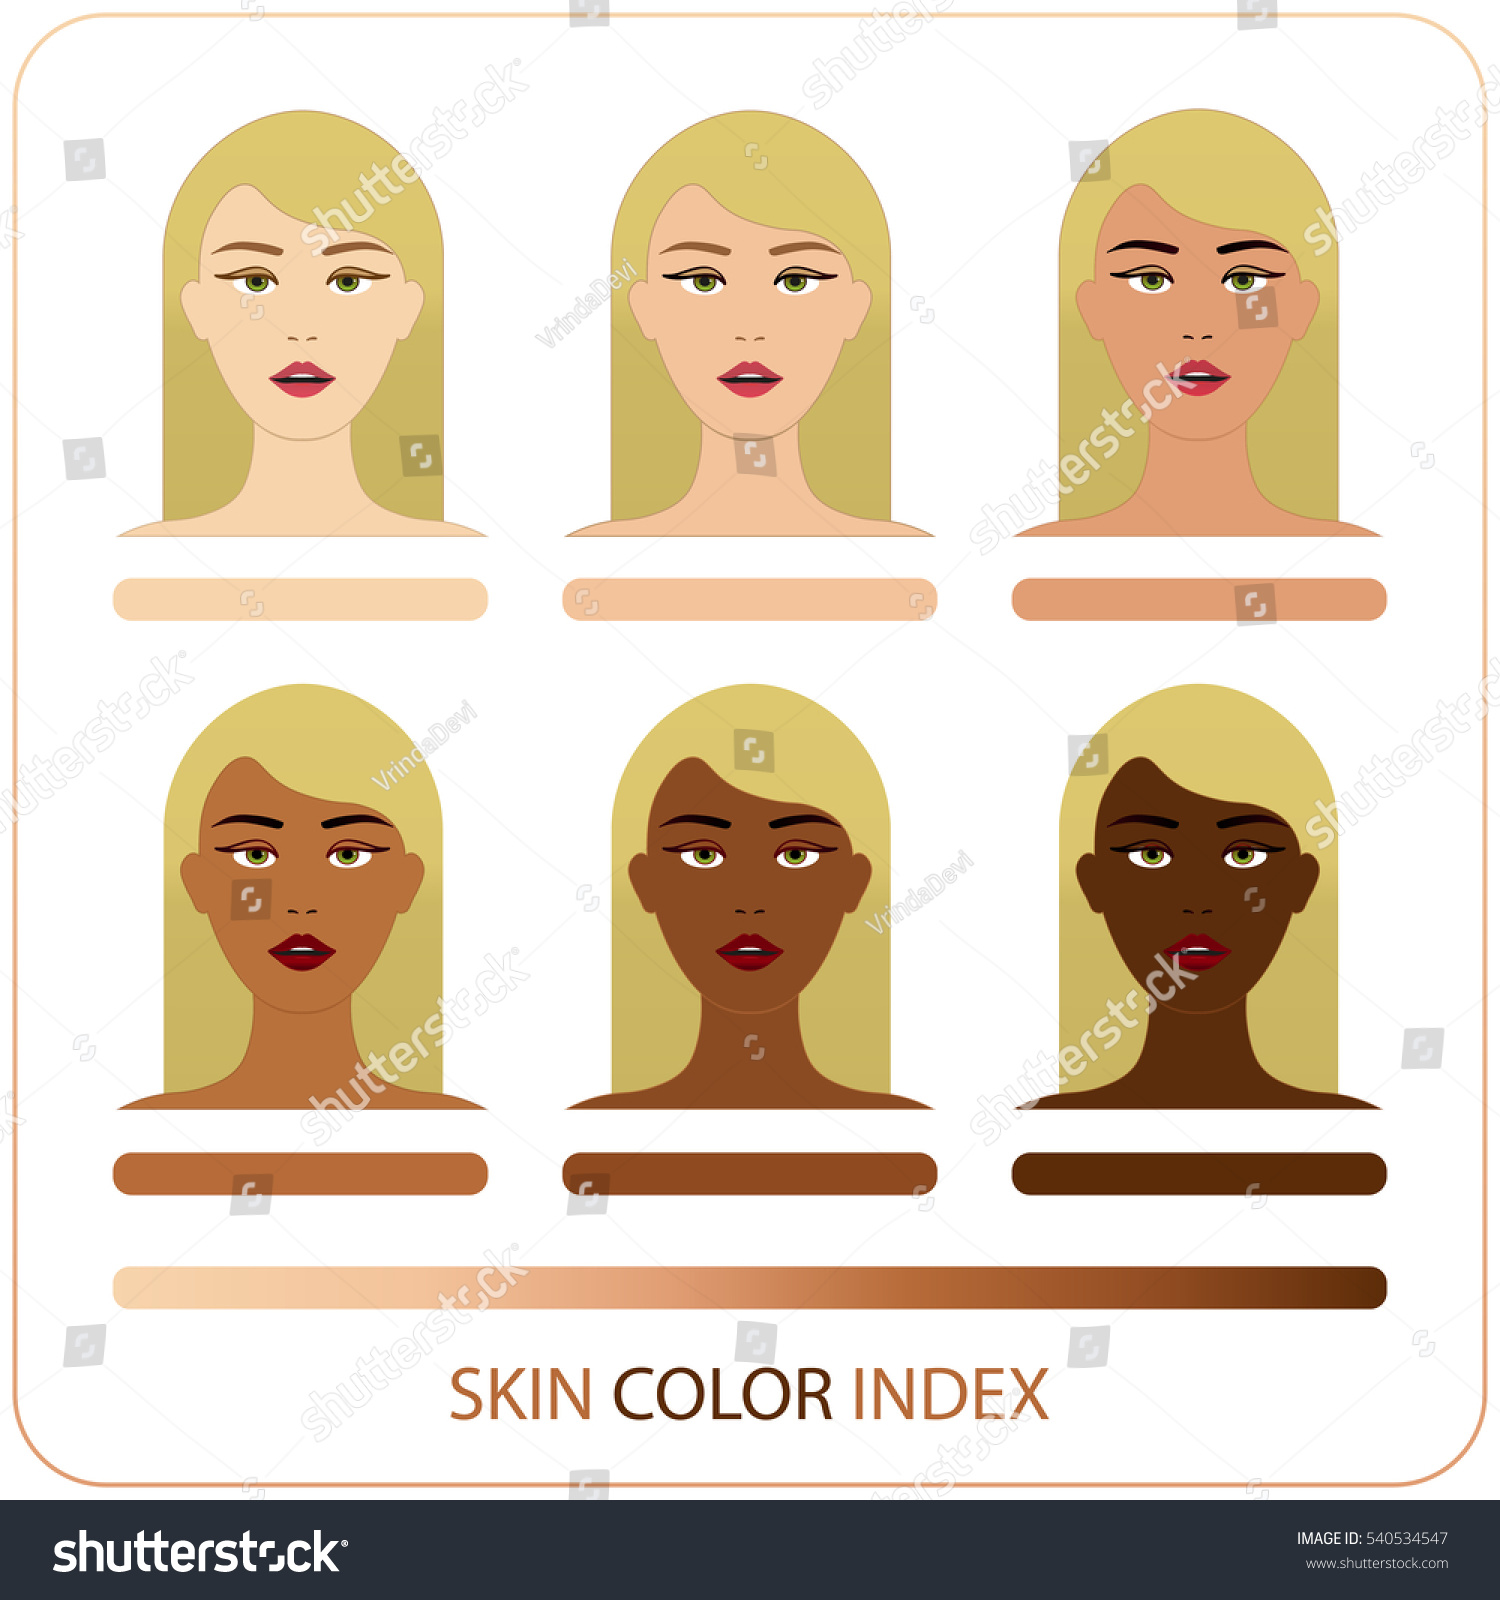 Skin color index infographic vector woman stock vector 540534547 skin color index infographic in vector woman face with chart of level of color skin nvjuhfo Choice Image